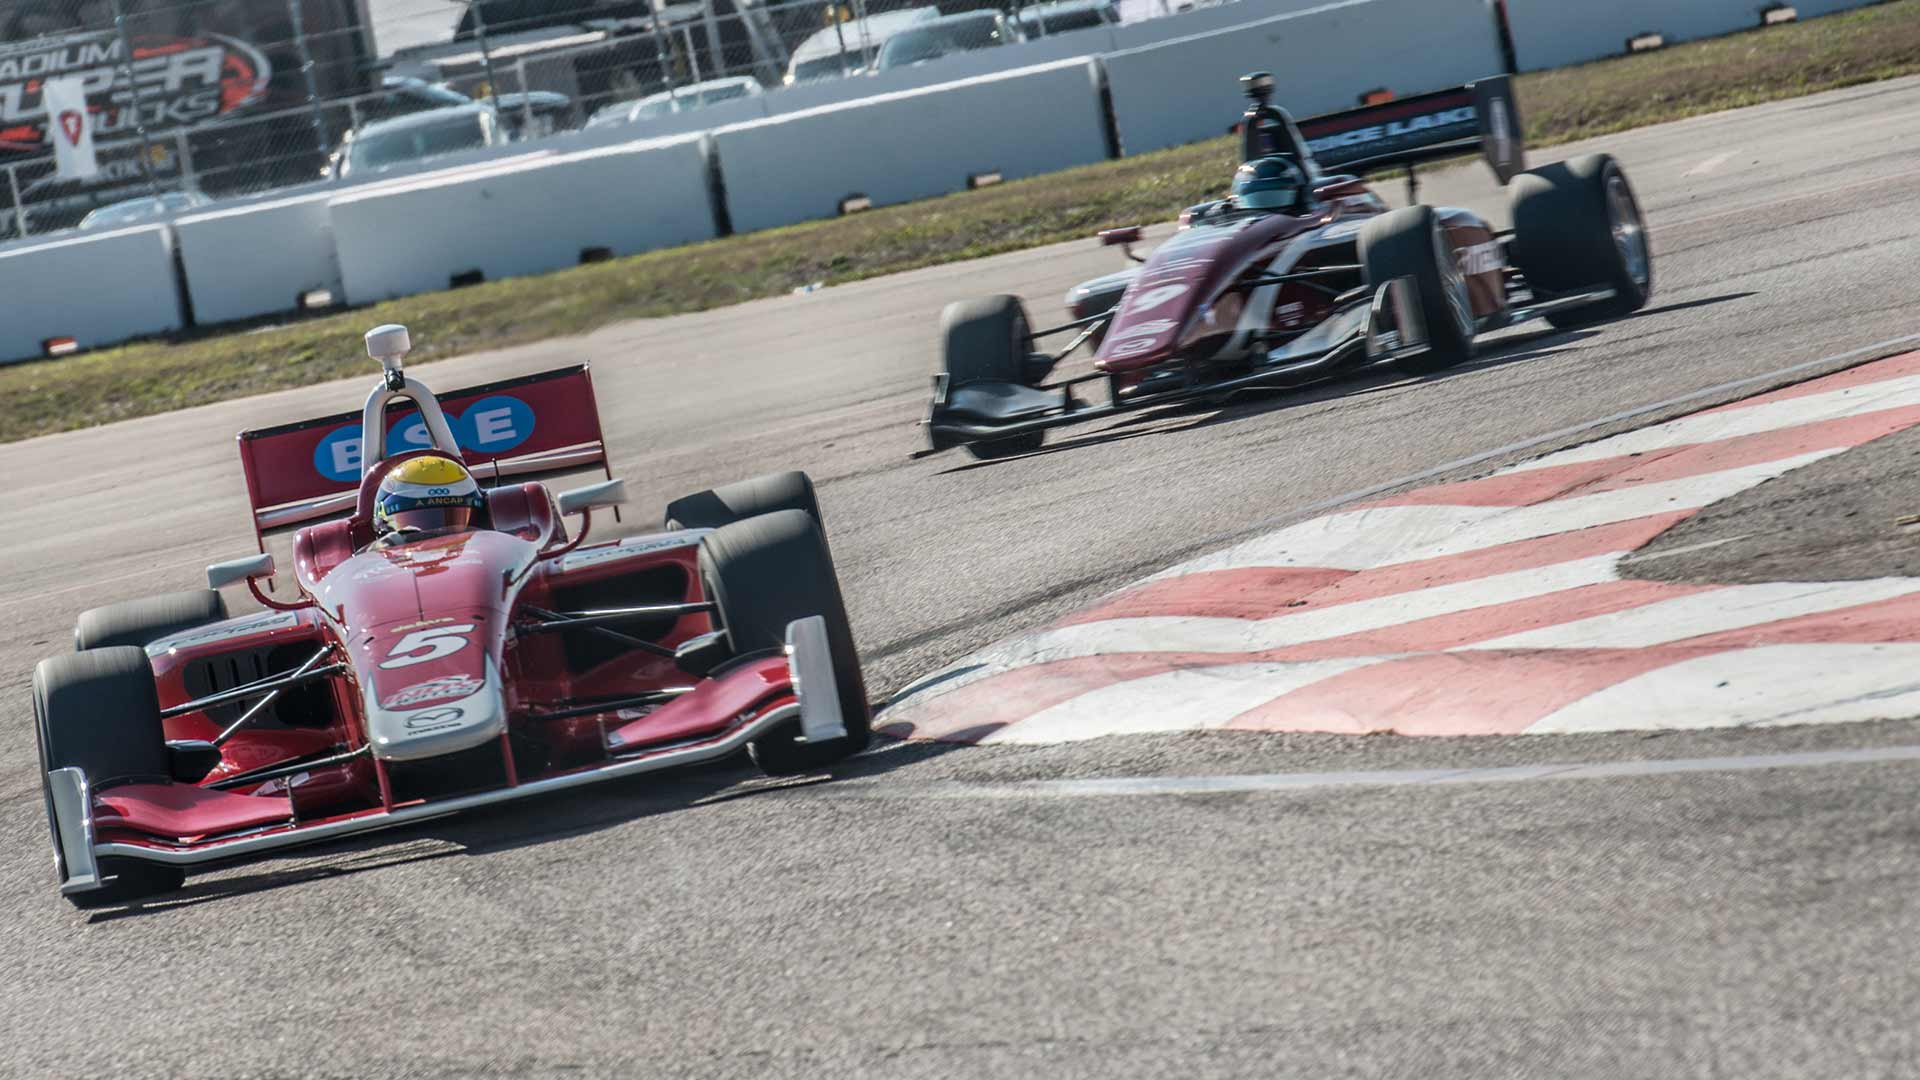 Road to Indy cars at the Firestone Grand Prix of St. Petersurg